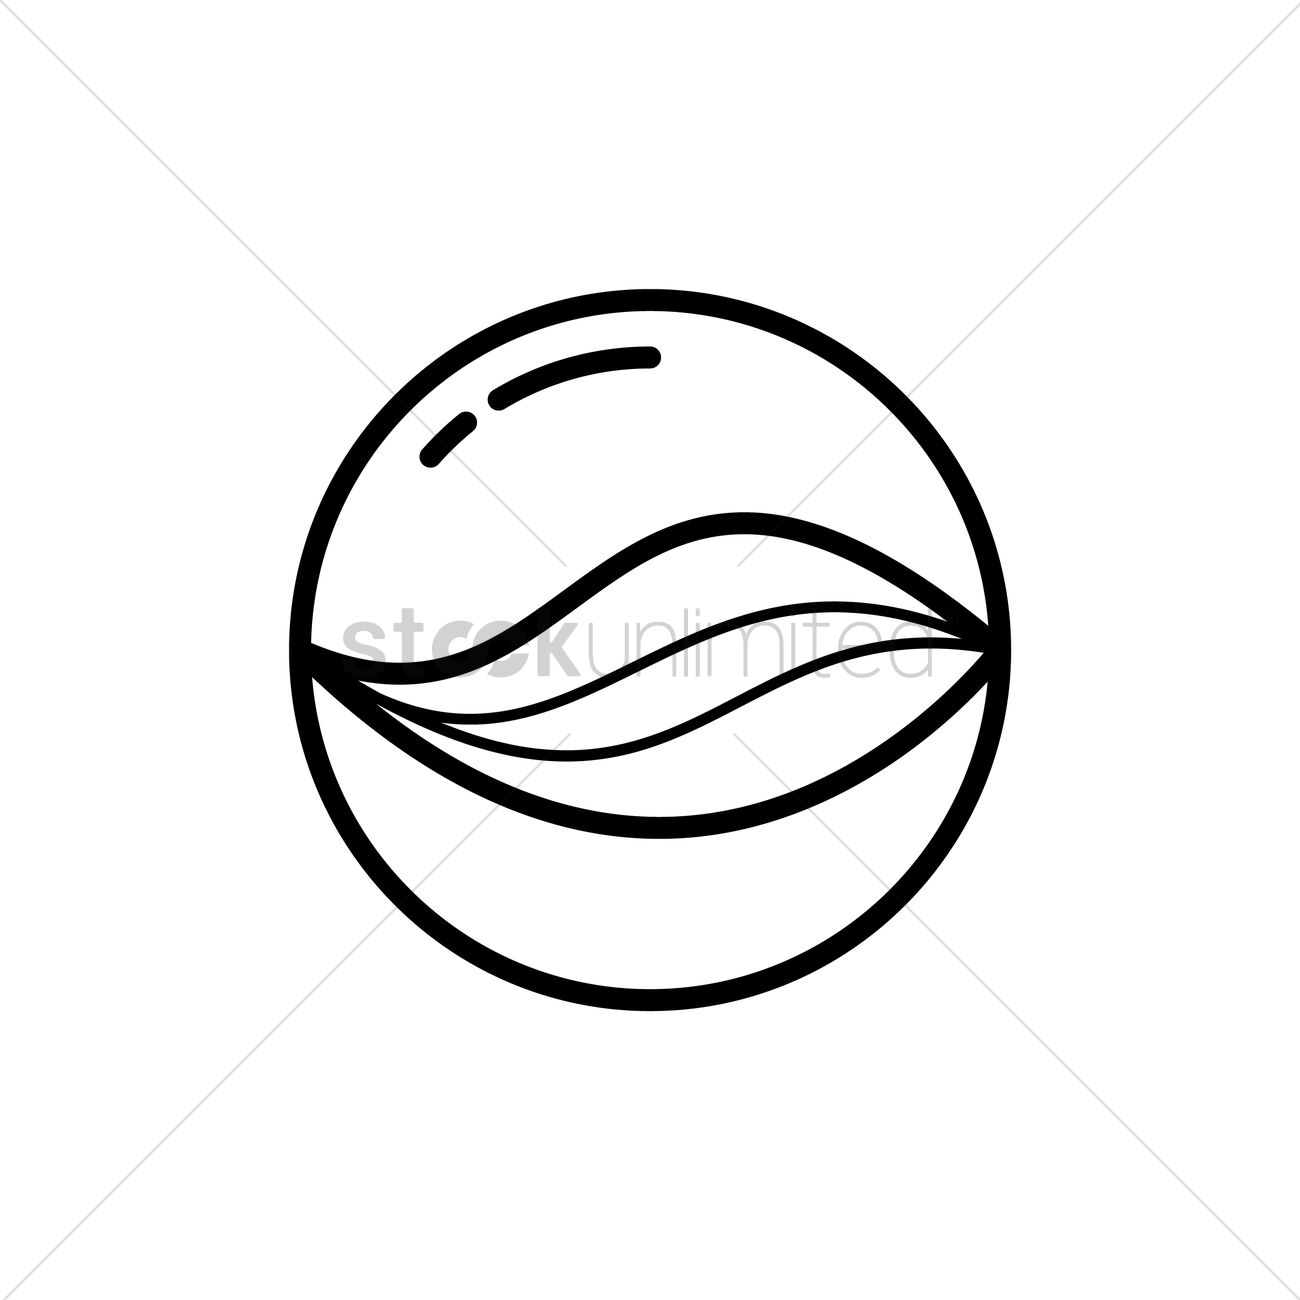 marble ball vector image 1527229 stockunlimited crossed softball bats clipart Softball Bat Outline